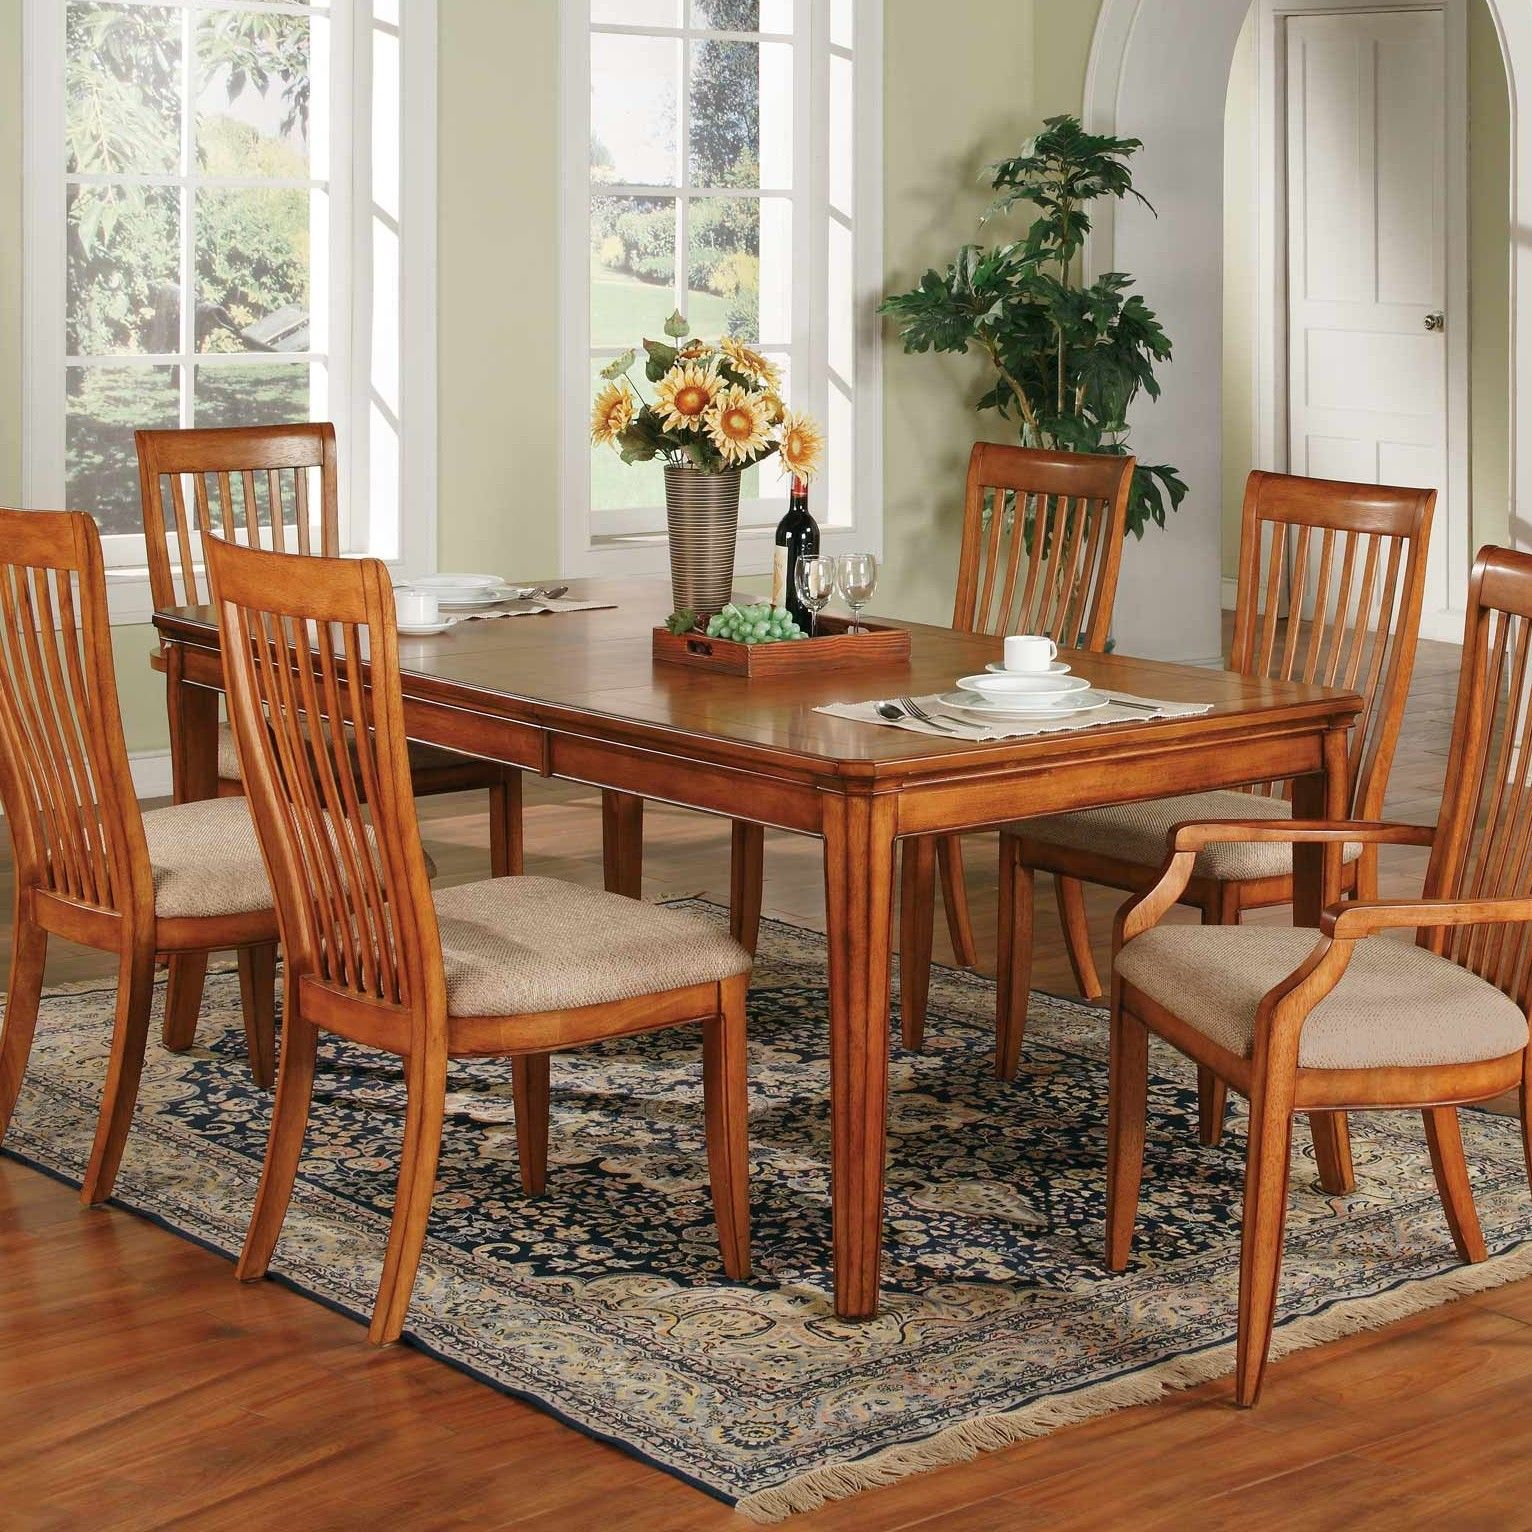 Esszimmermöbel Online Chester Dining Table Products